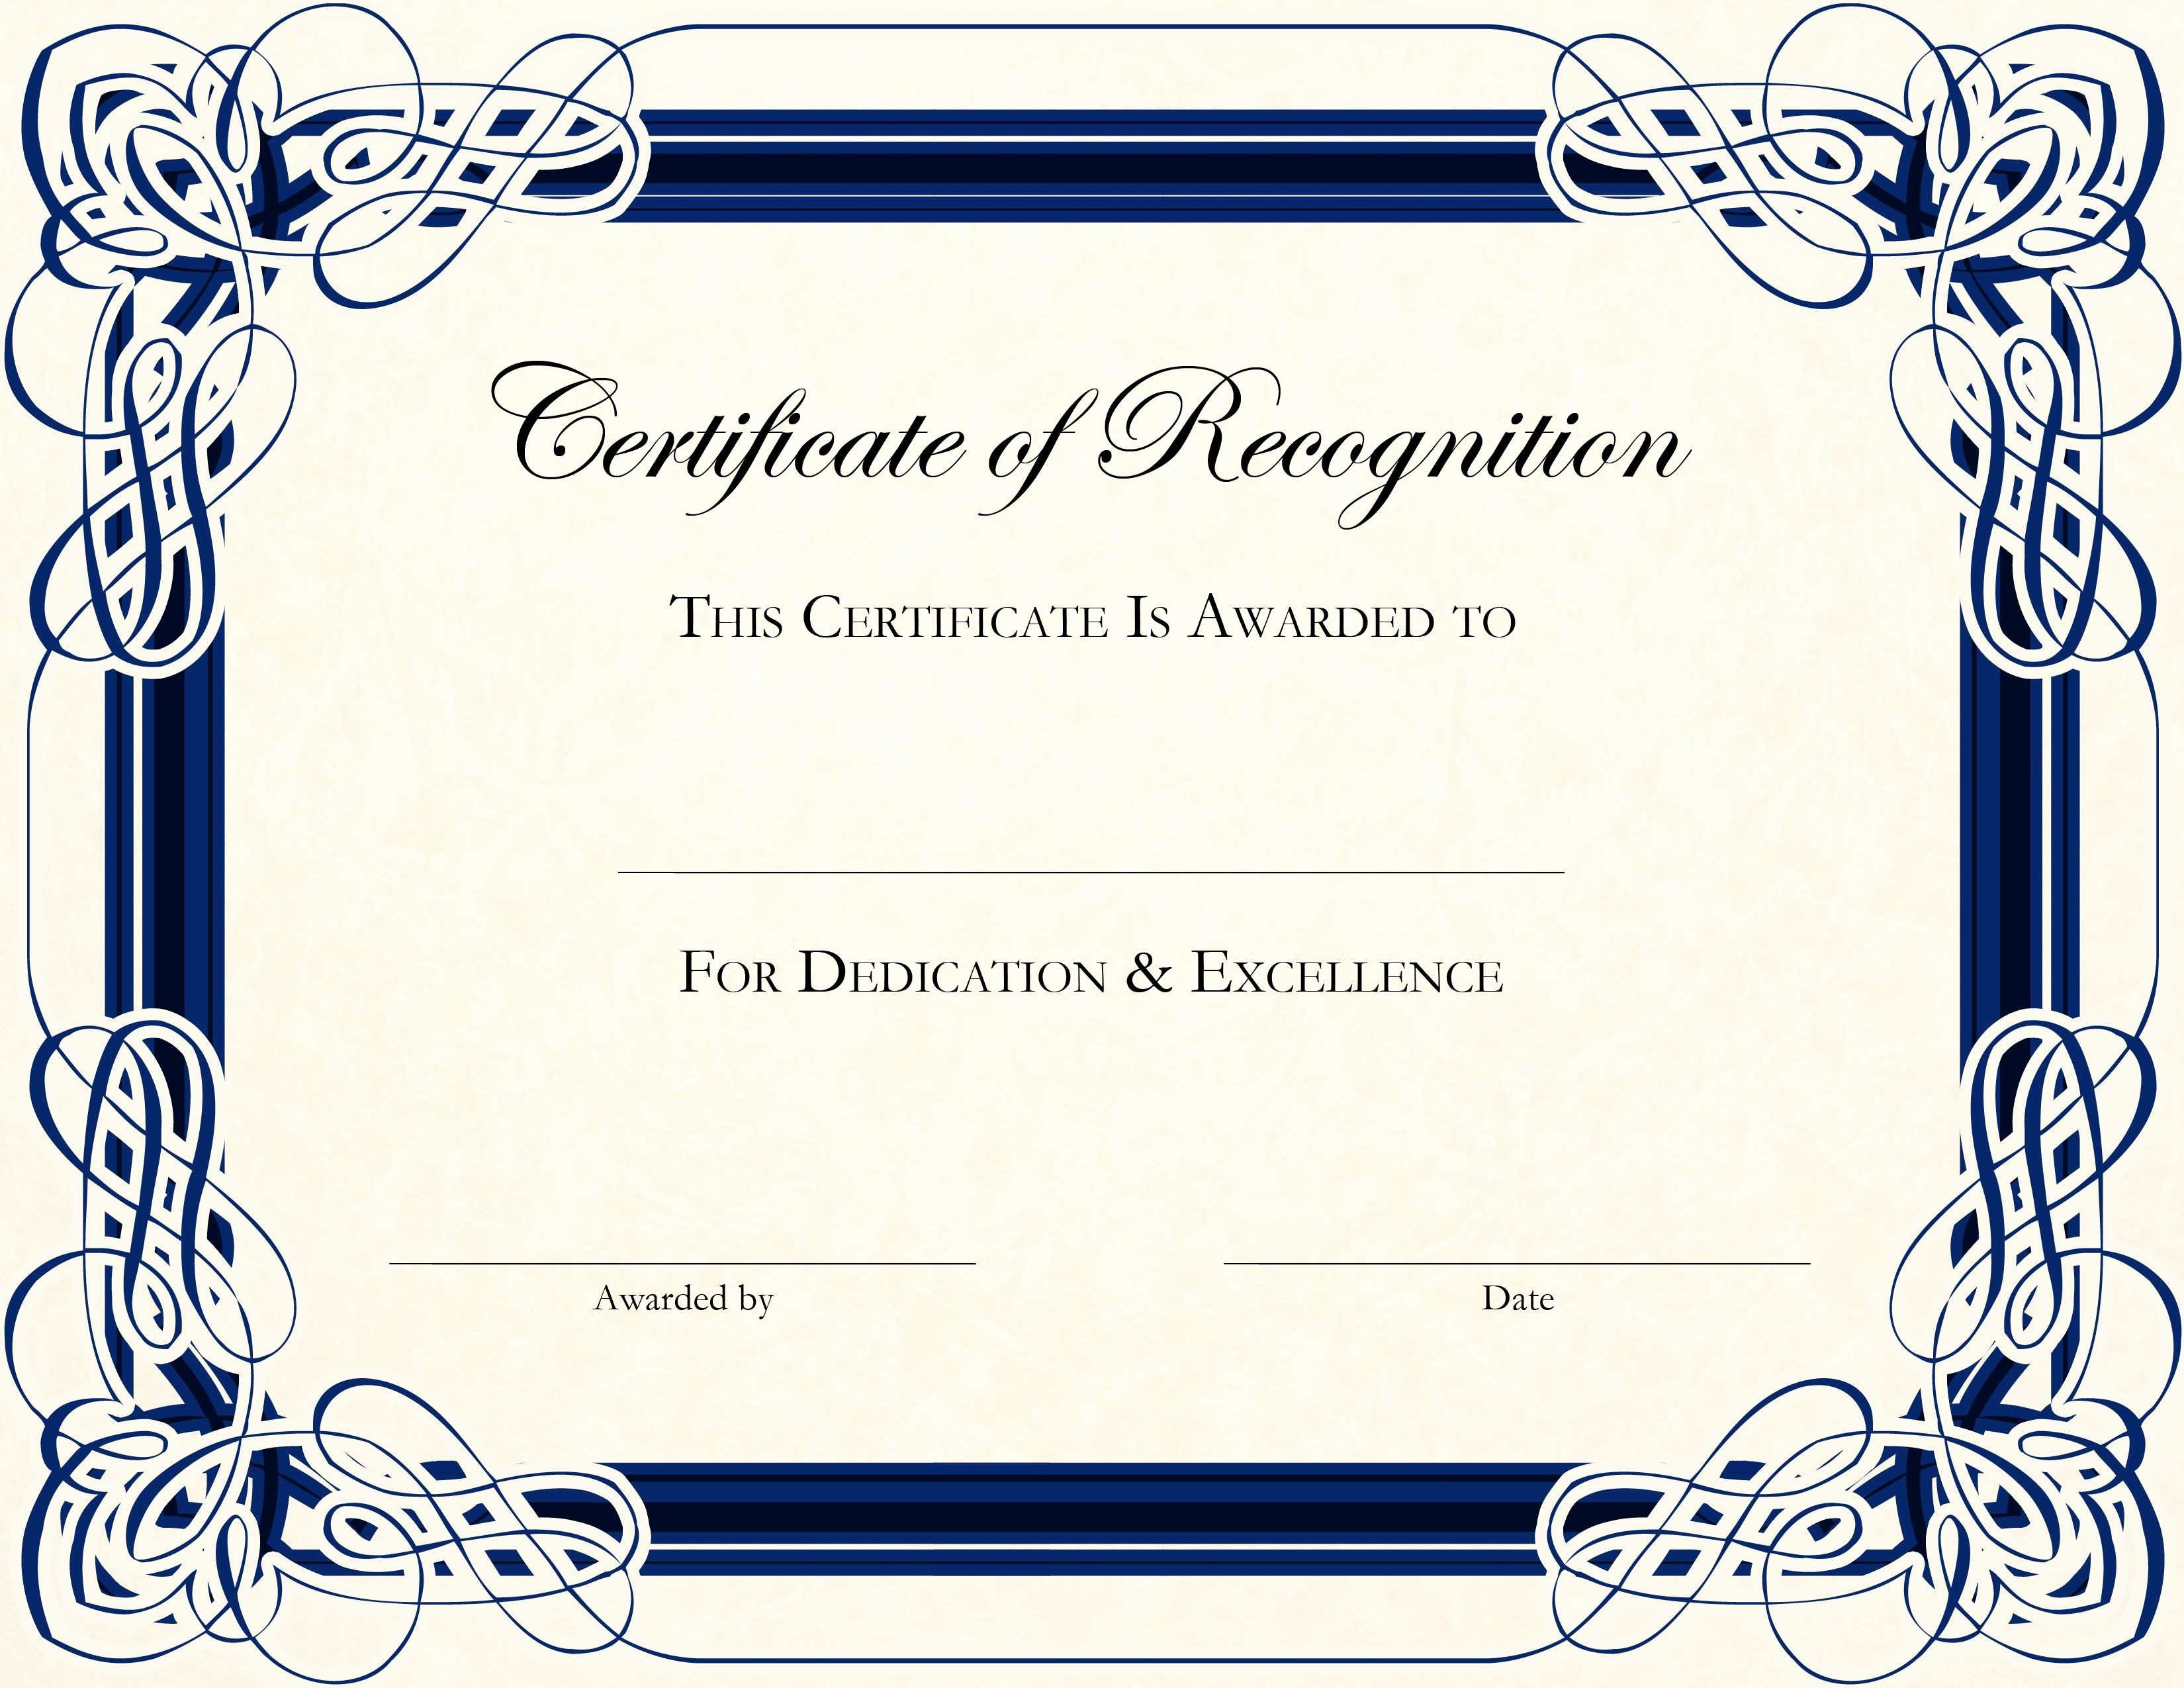 Certificate Of Award Template Free Lovely Free Printable Certificate Templates for Teachers